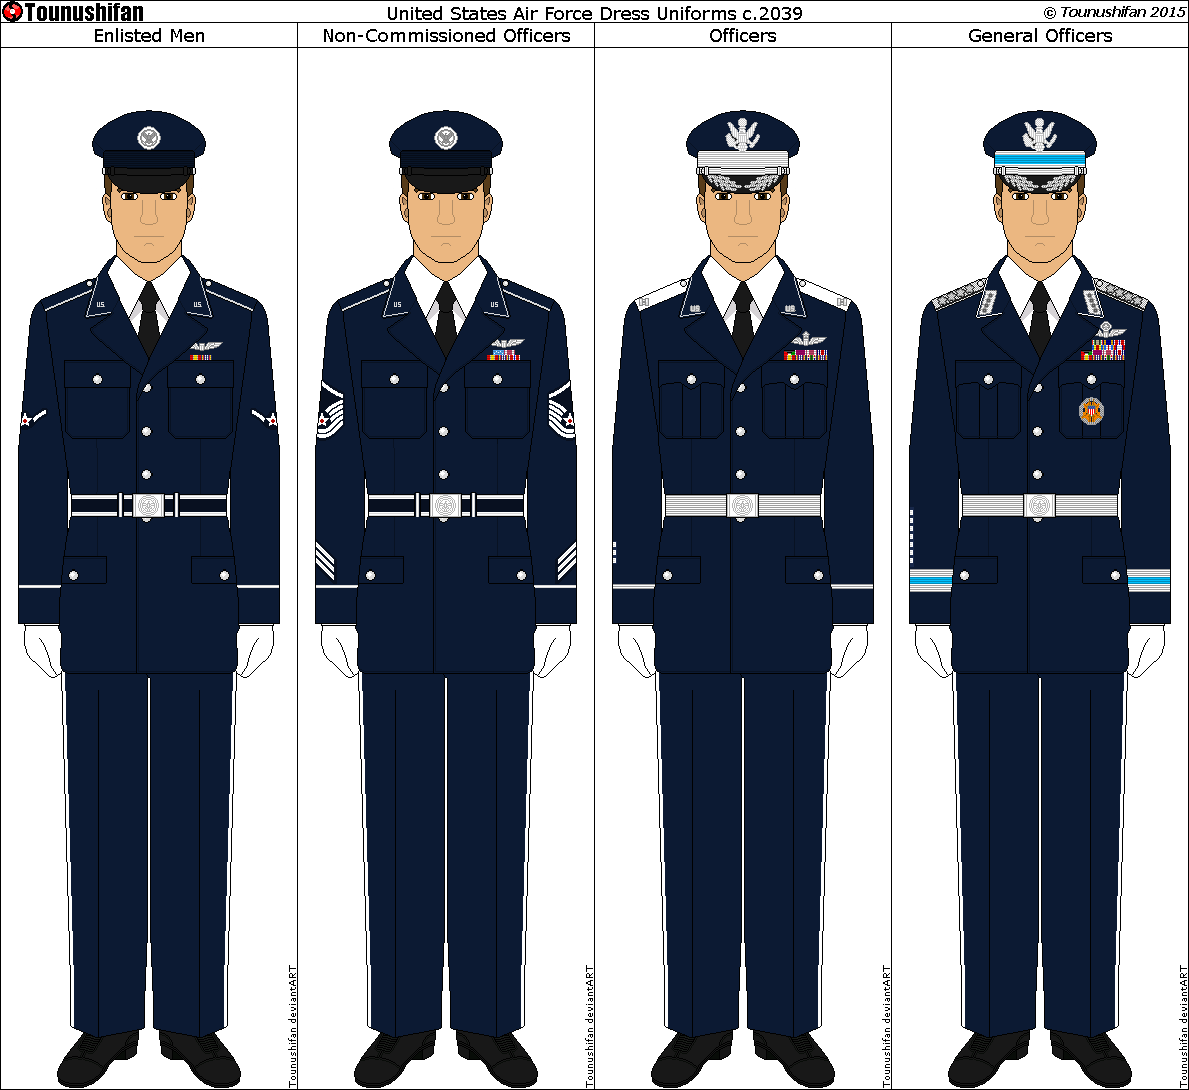 New Air Force uniforms for use 2016-2039